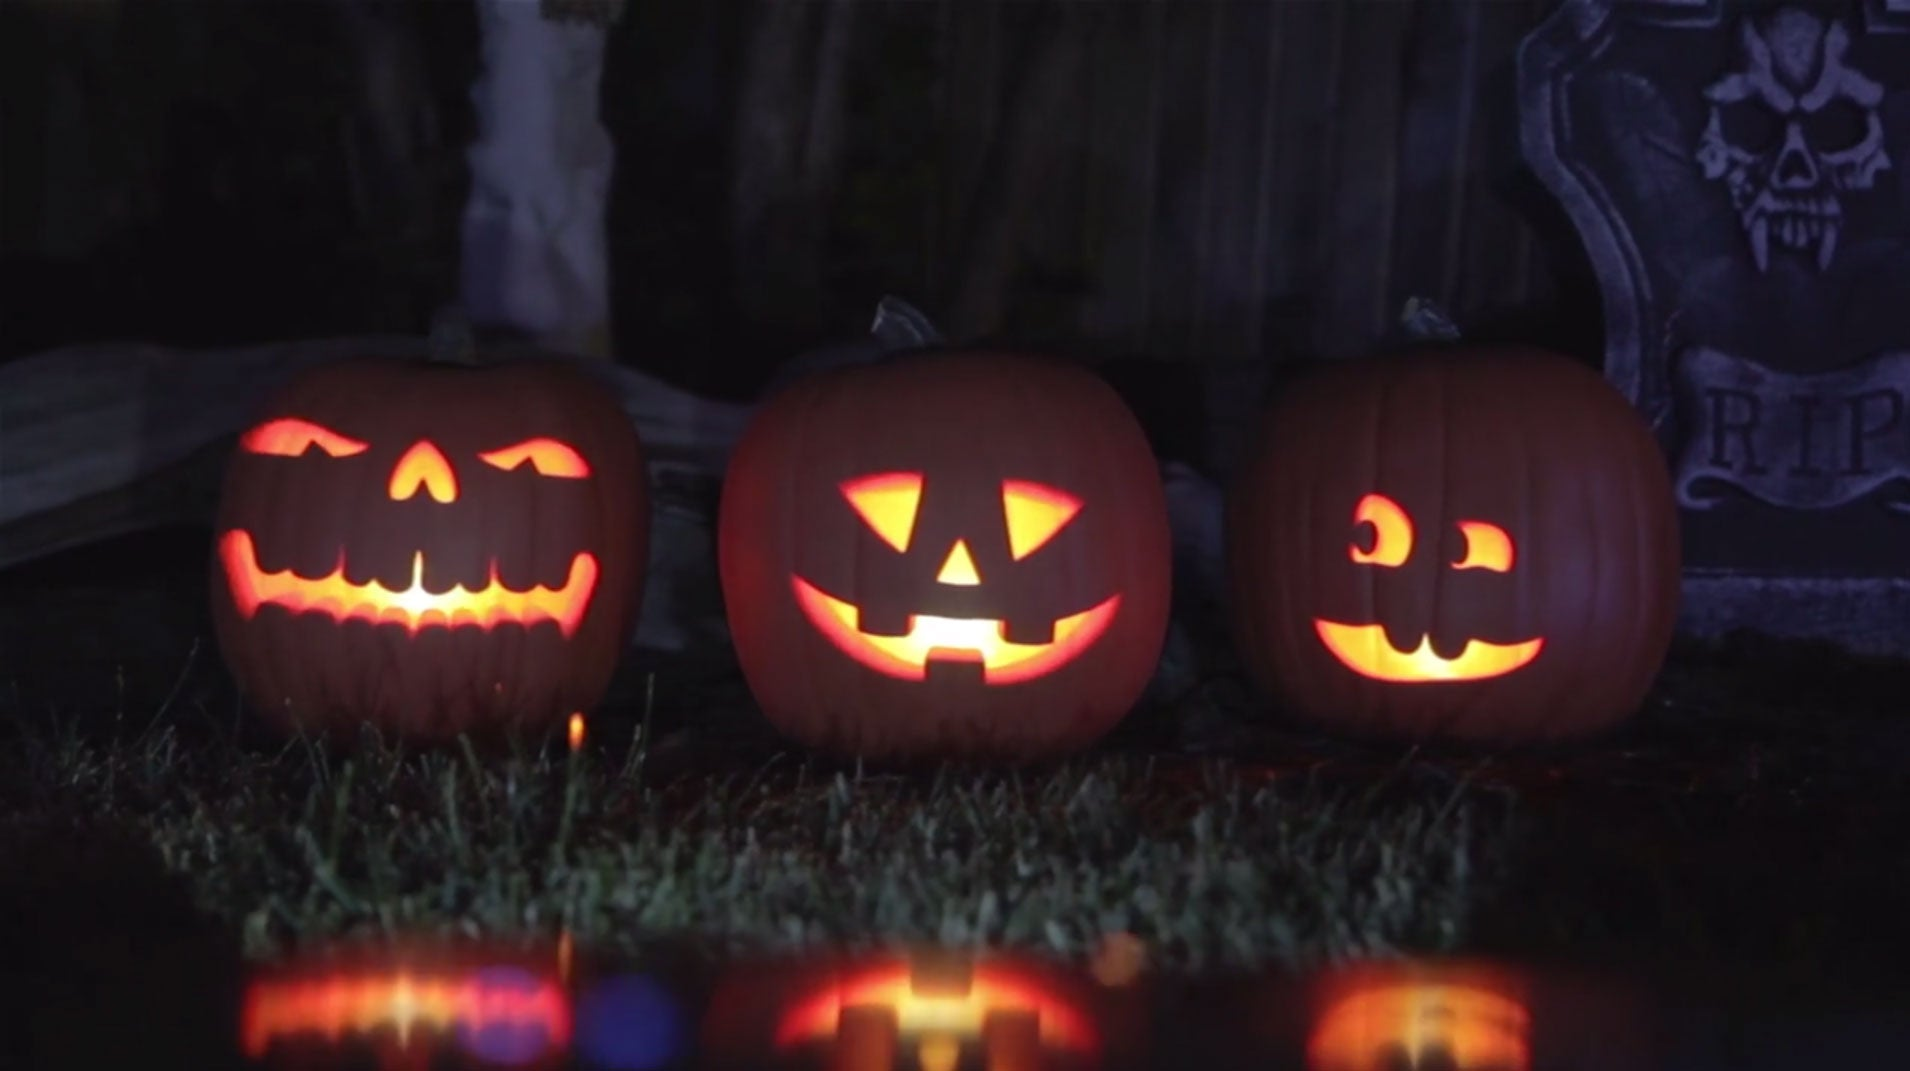 The Songs of Witching Hour and Jack-O'-Lantern Jamboree ...